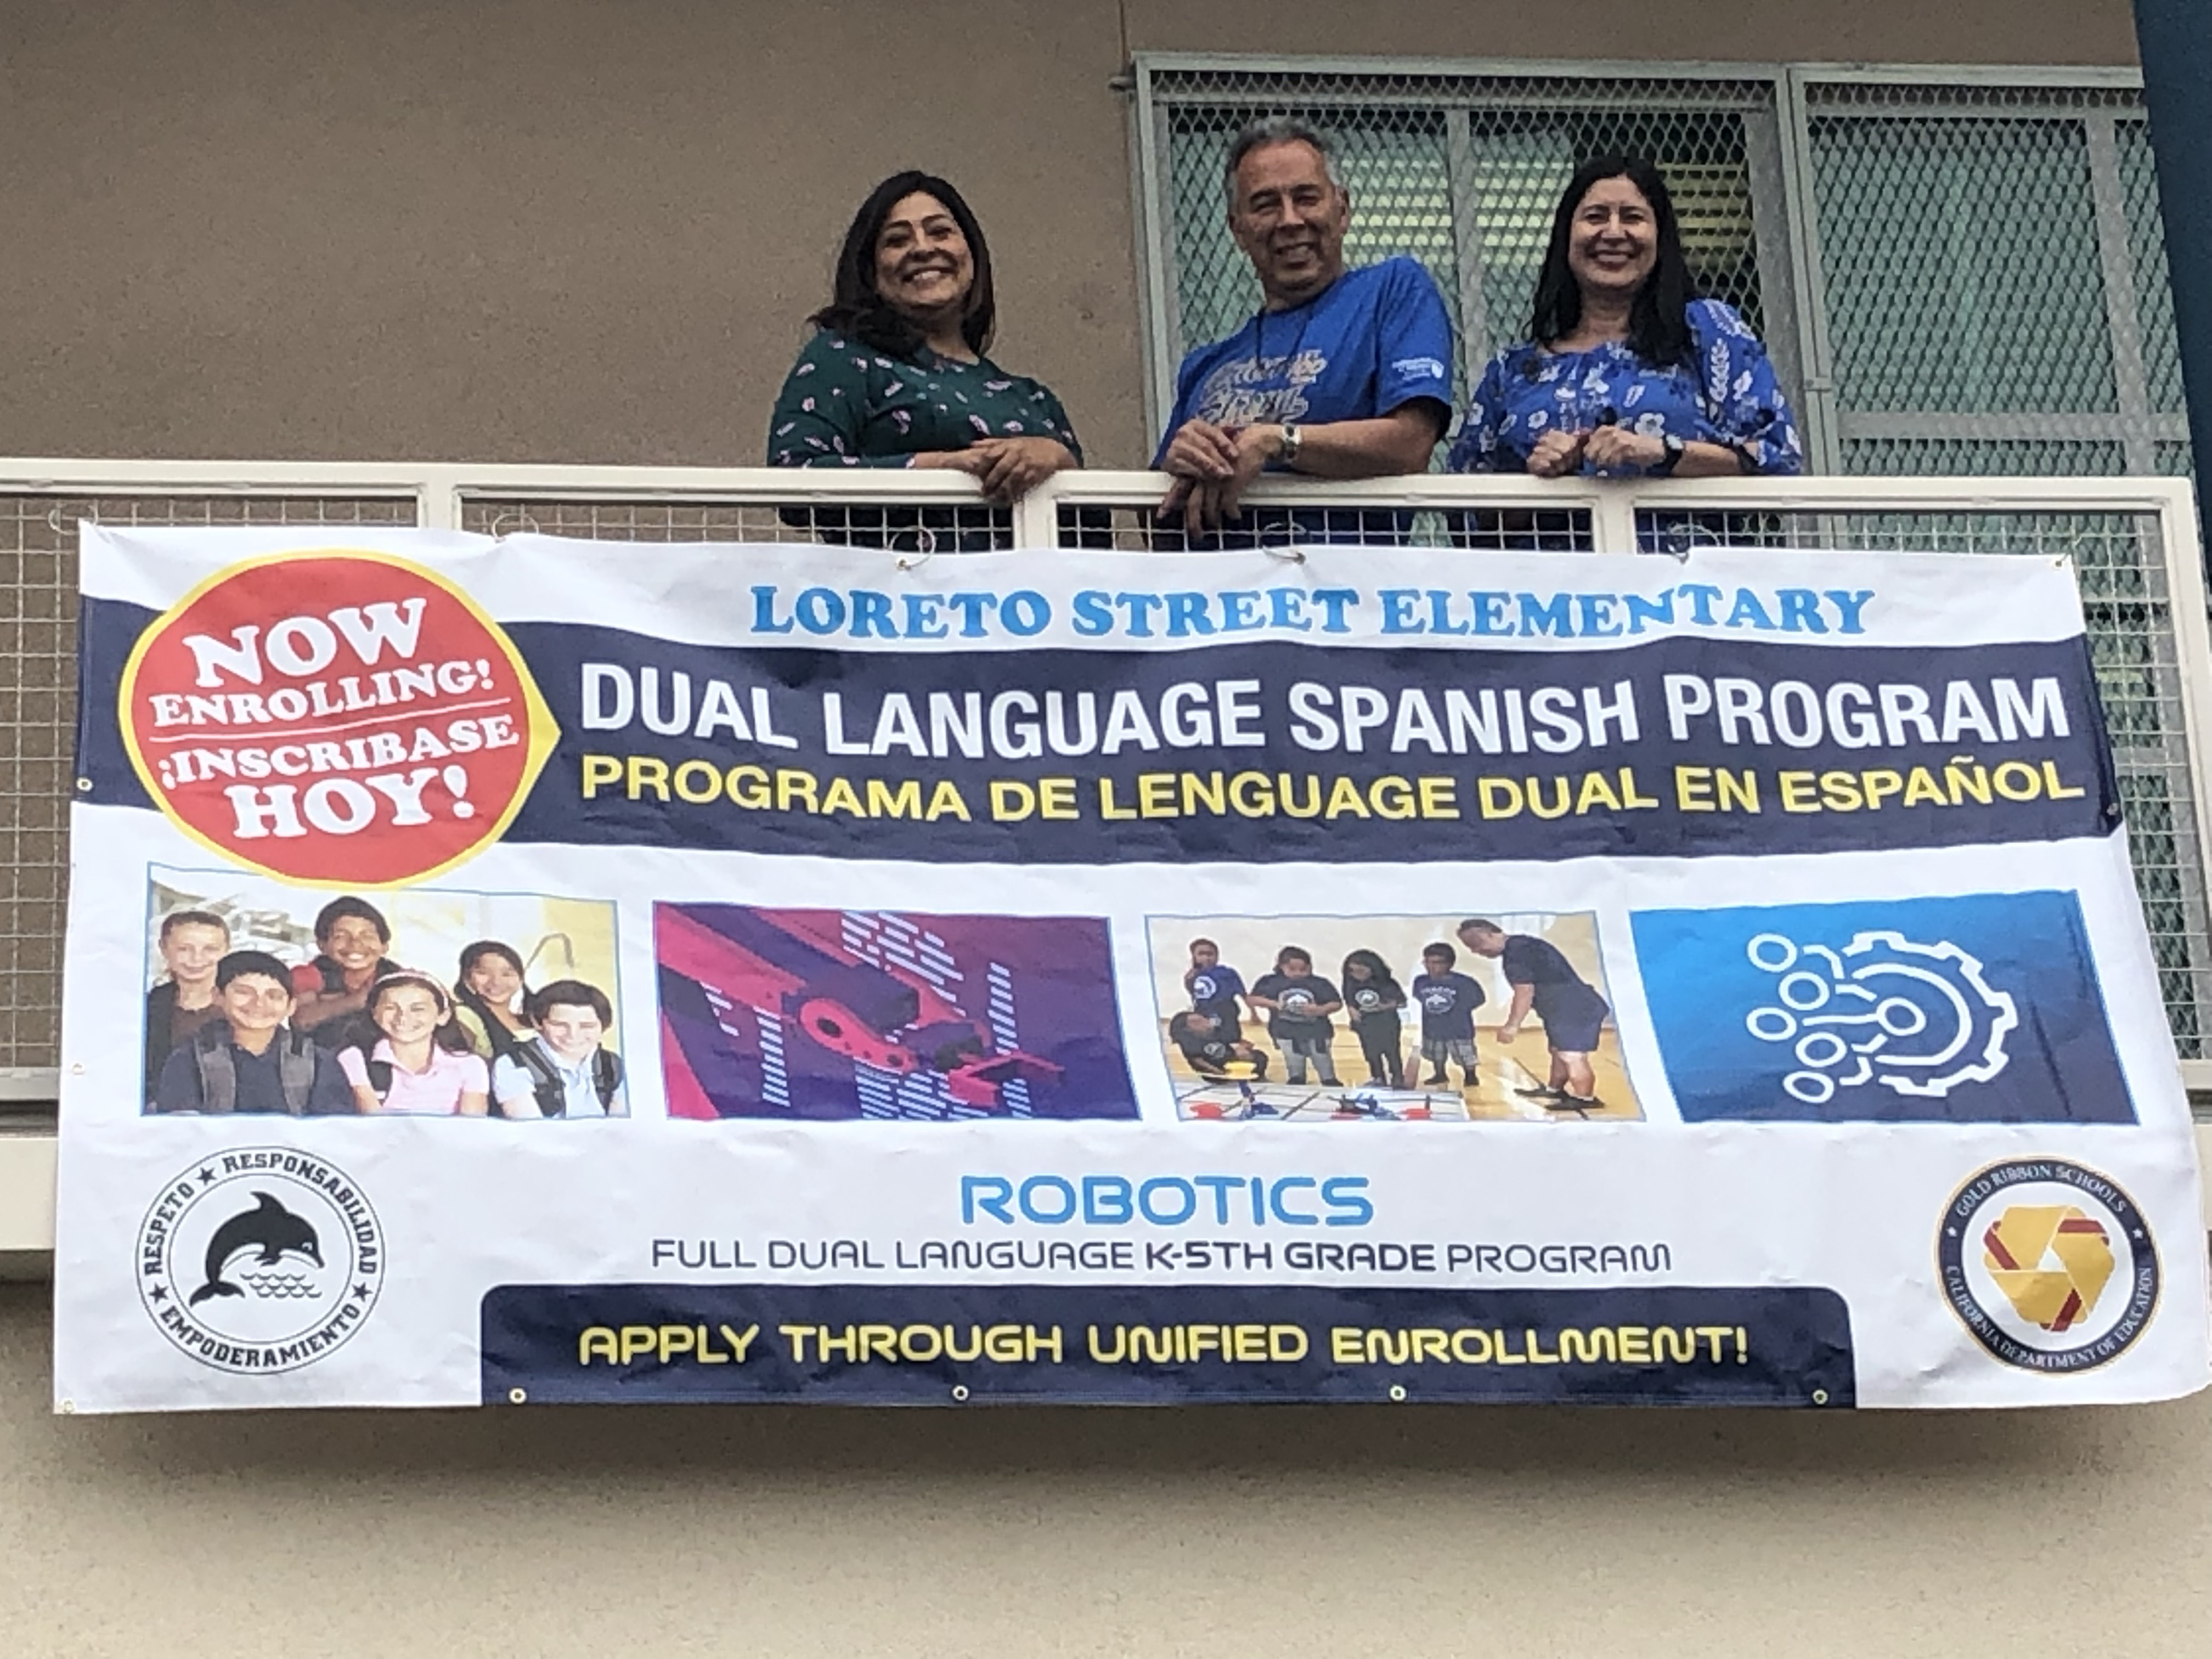 Enroll Through Unified Enrollment for 2020-2021 NOW